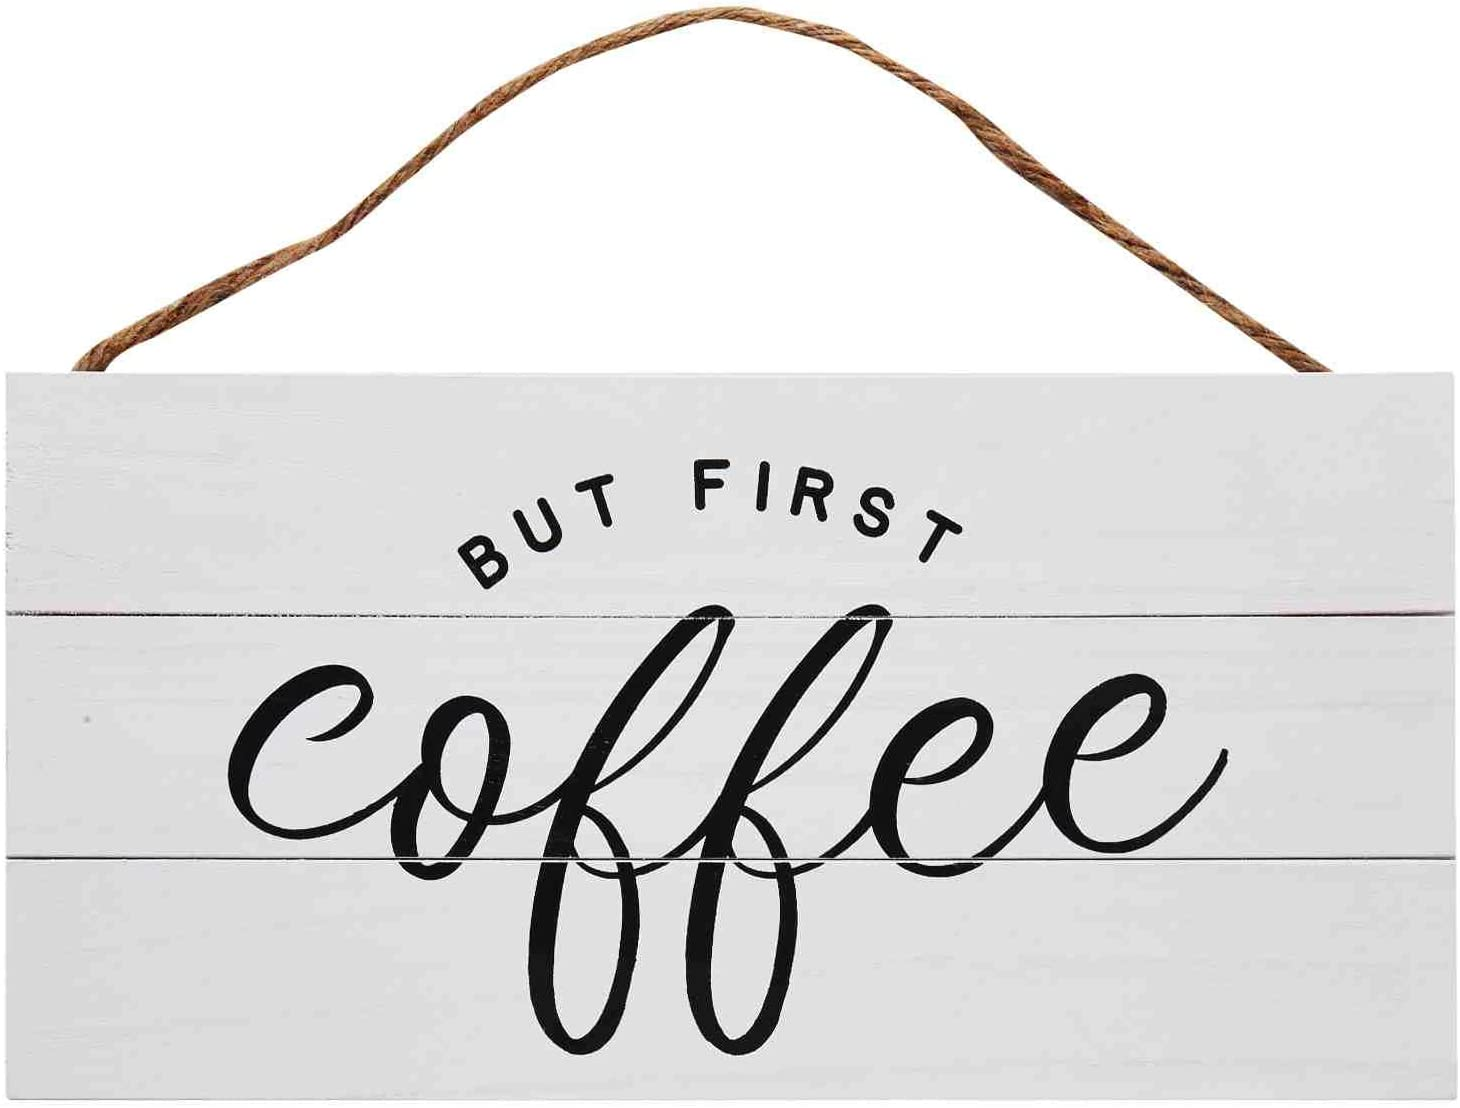 GSM Japan Maker New Brands Coffee Wood Plank Hanging Kitchen for Sign Bombing free shipping 13.75 x 6